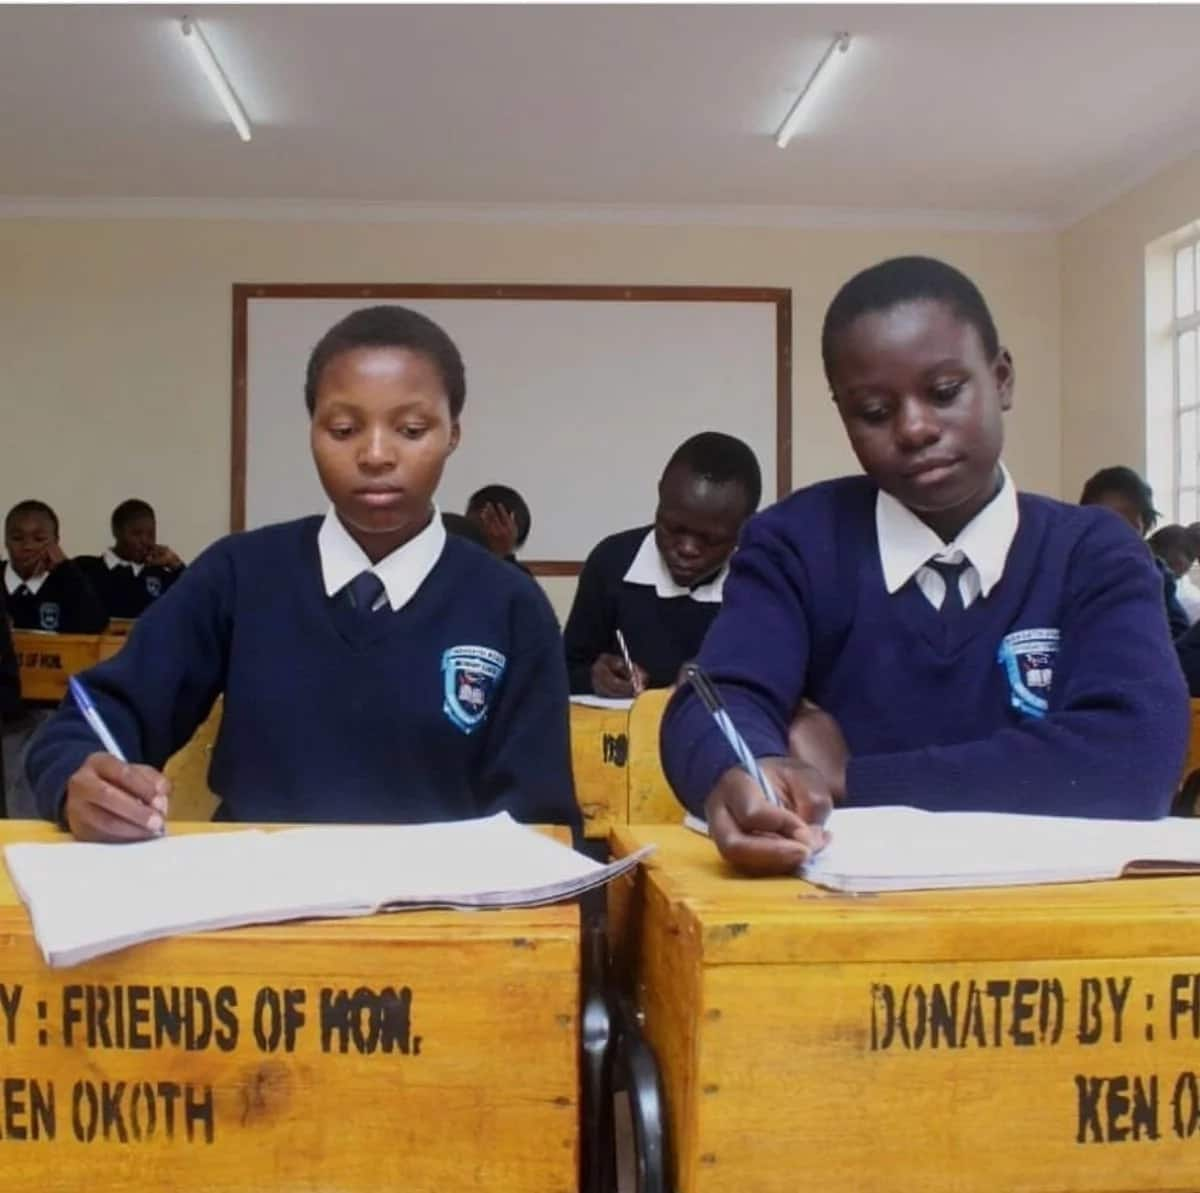 Kibra MP warms Kenyan hearts yet again by donating desks, chairs to school on his 40th birthday